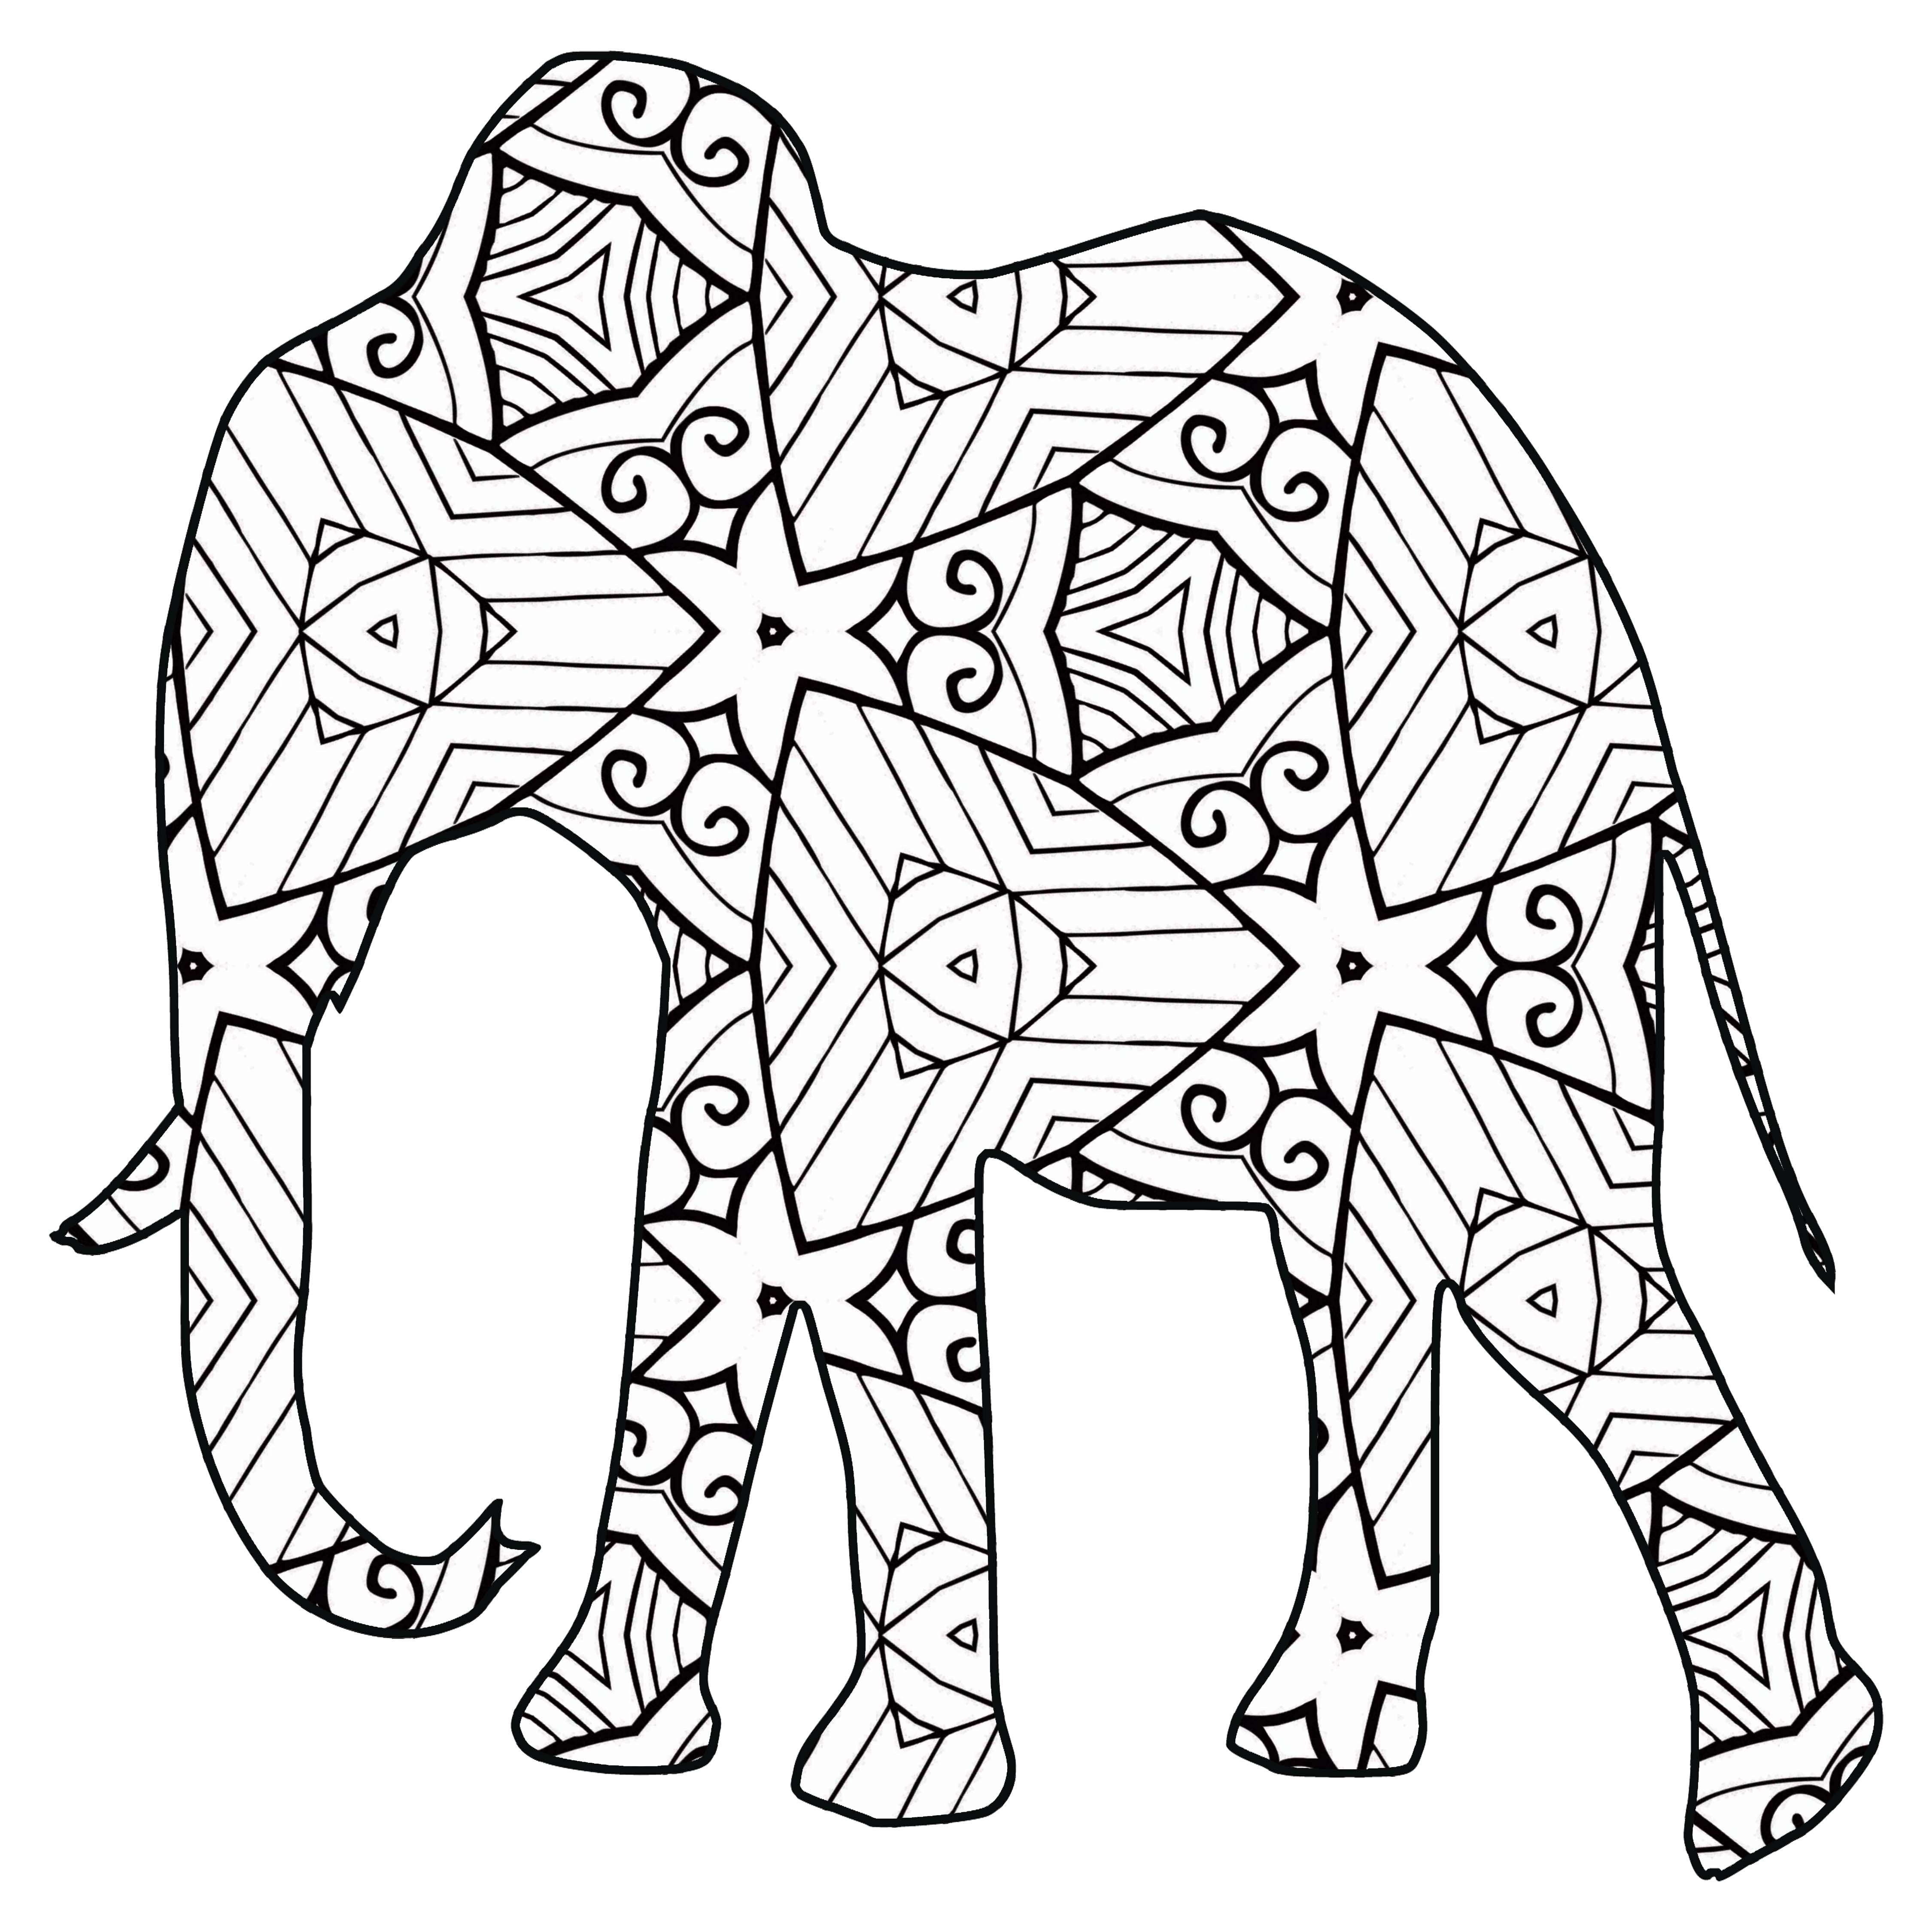 Best ideas about Animal Free Printable Coloring Sheets . Save or Pin 30 Free Printable Geometric Animal Coloring Pages Now.